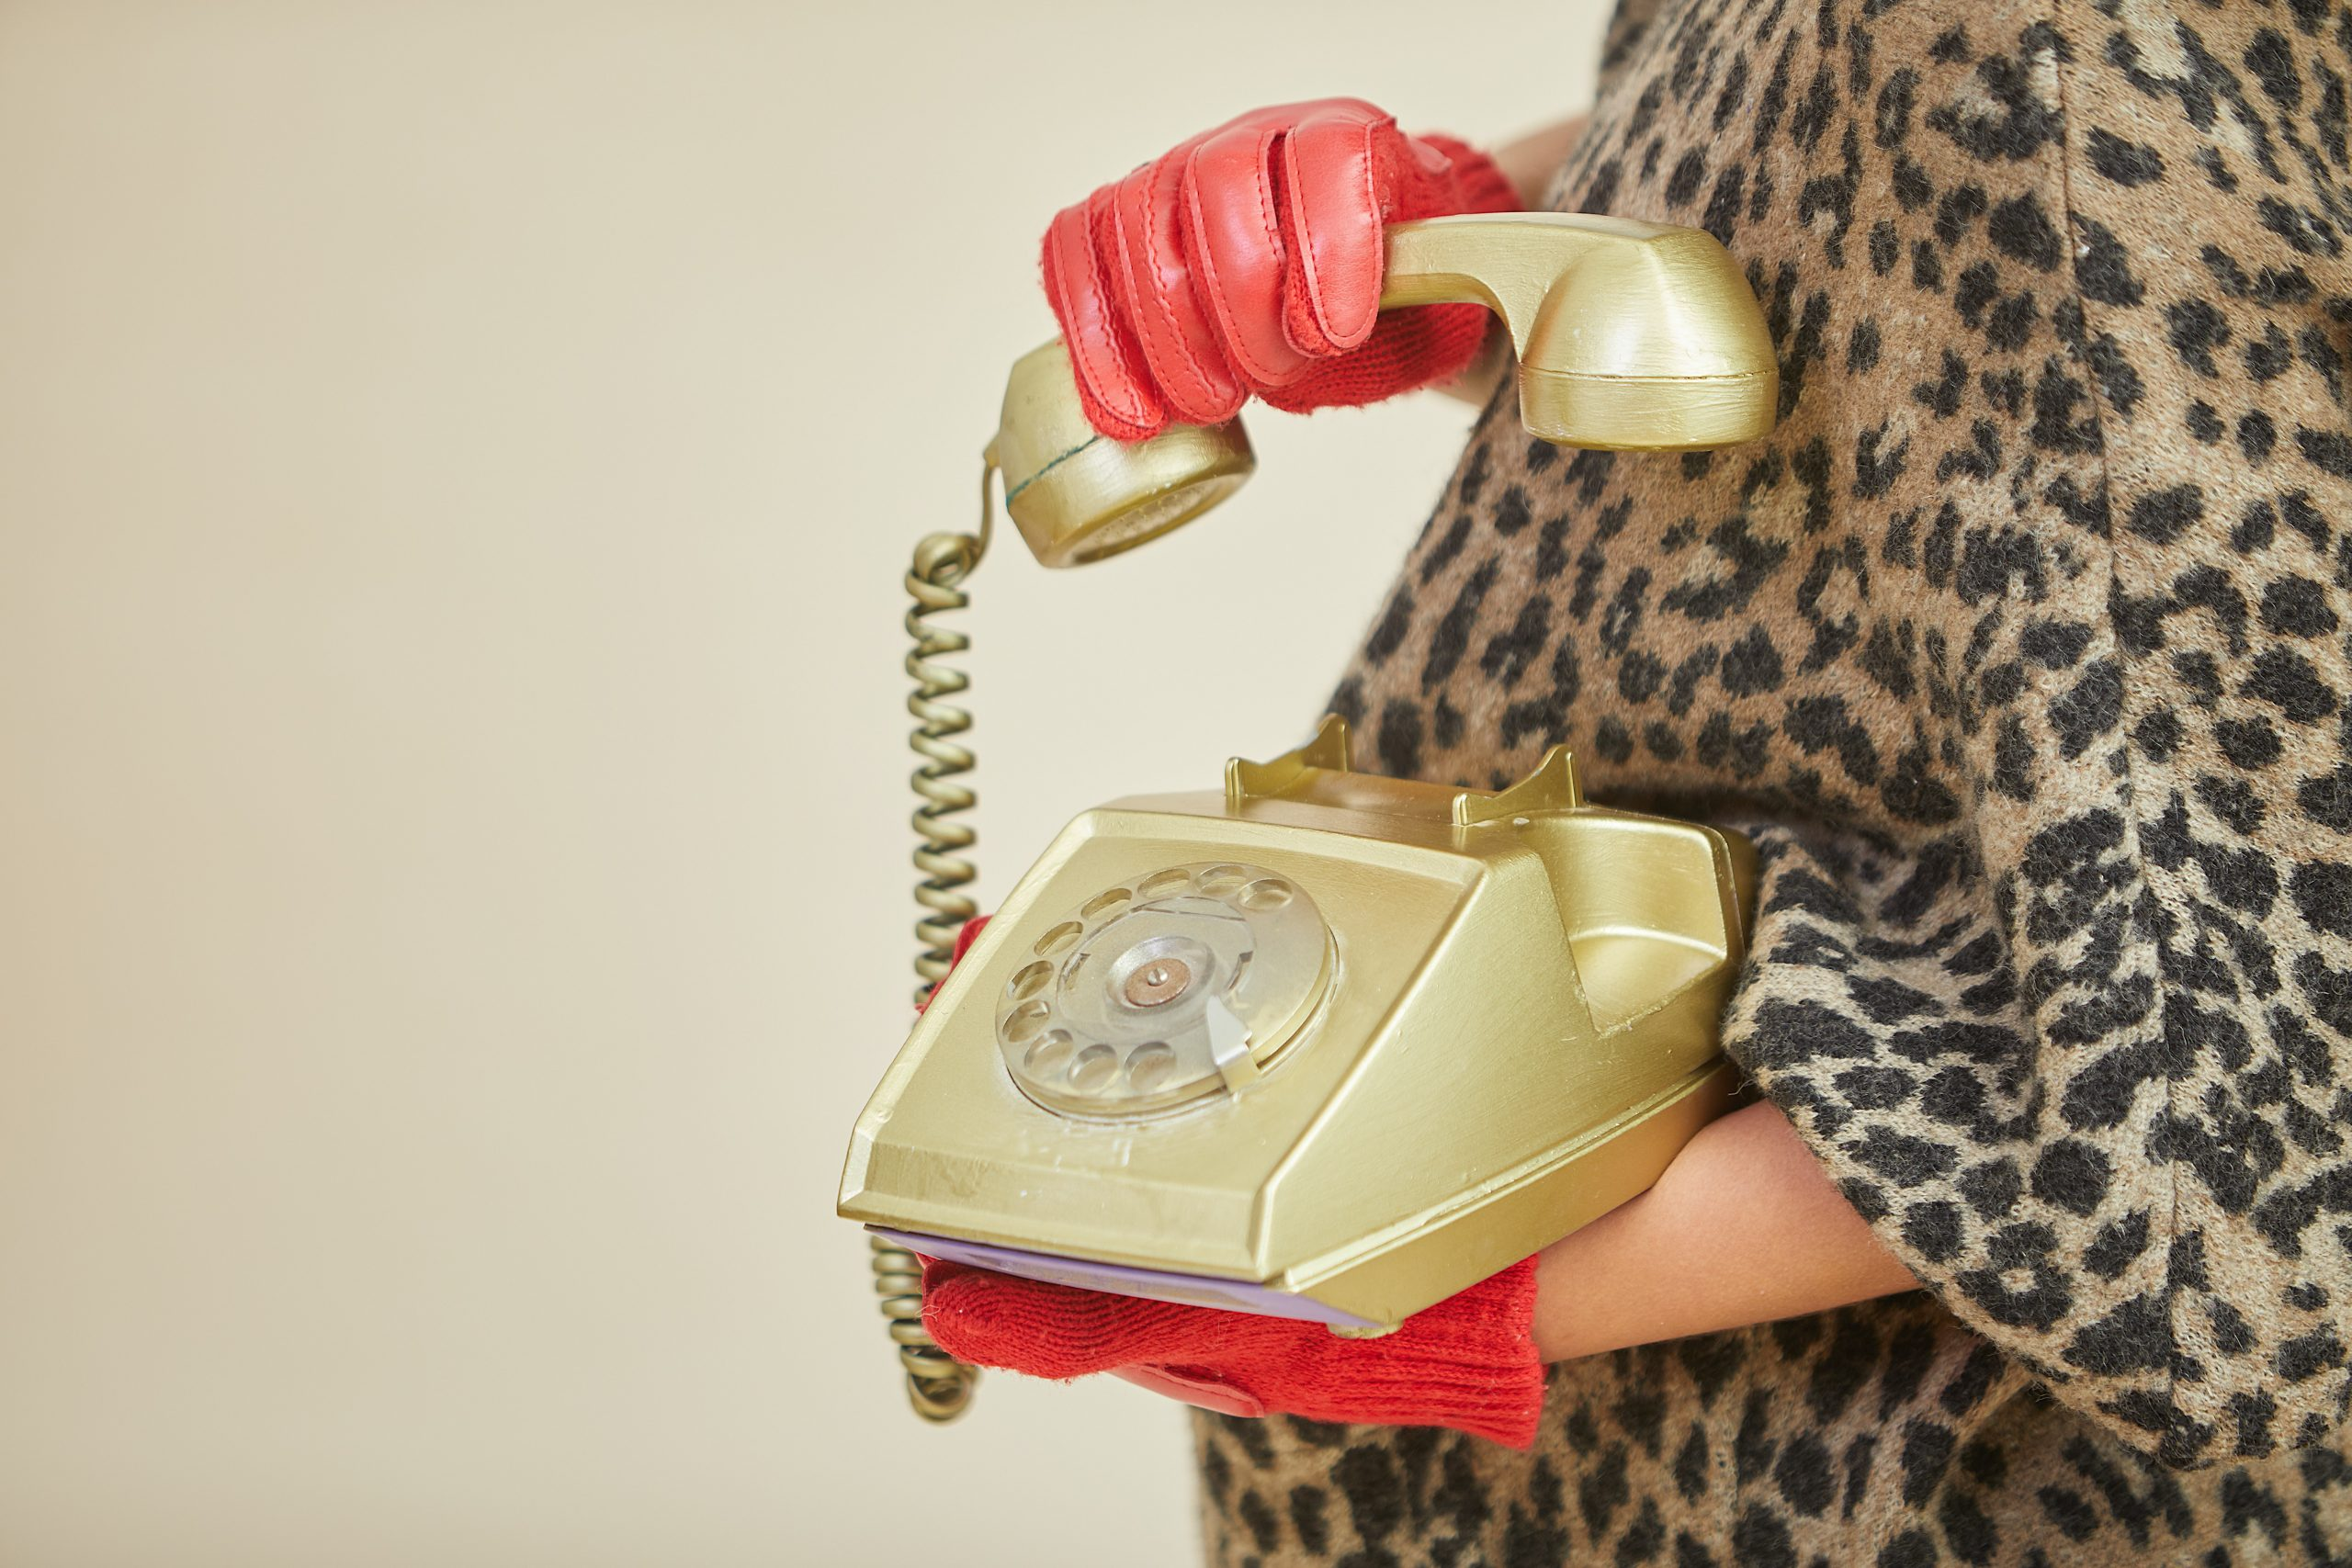 Woman with red gloves holding rotary phone.